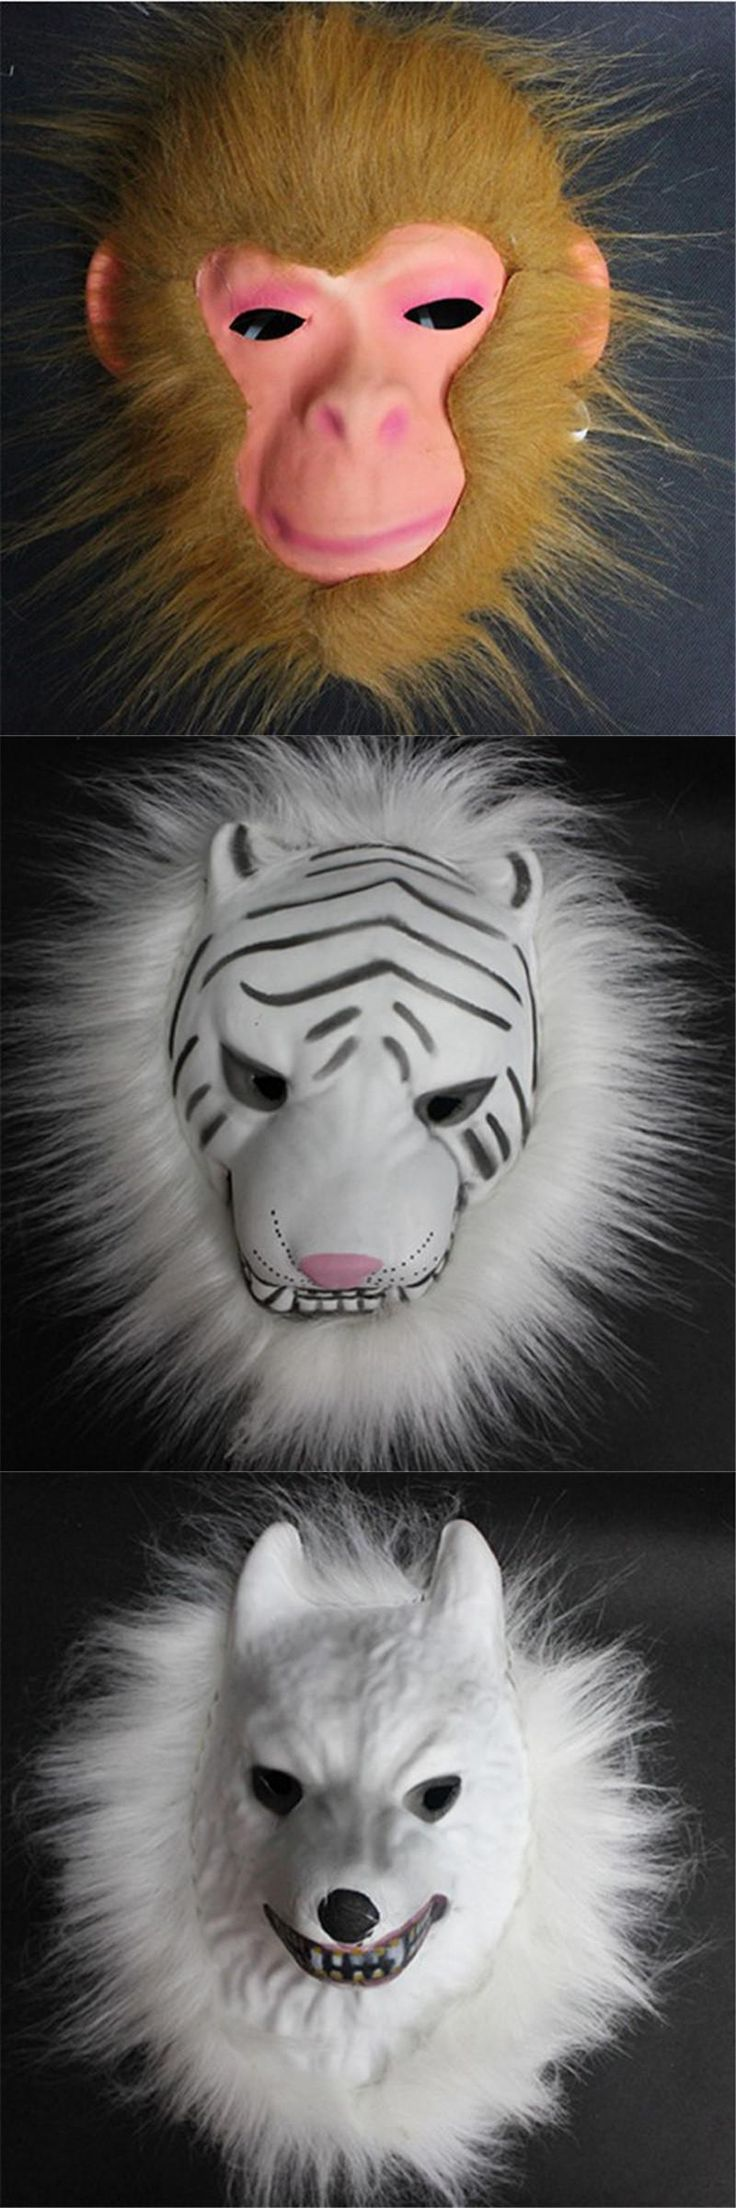 [Visit to Buy] Full Face Cosplay Costume Mask Tiger/Monkey/Wolf Realistic Fur Mane Latex Mask Creepy Animal Partern Fool' Day Gift F20 #Advertisement